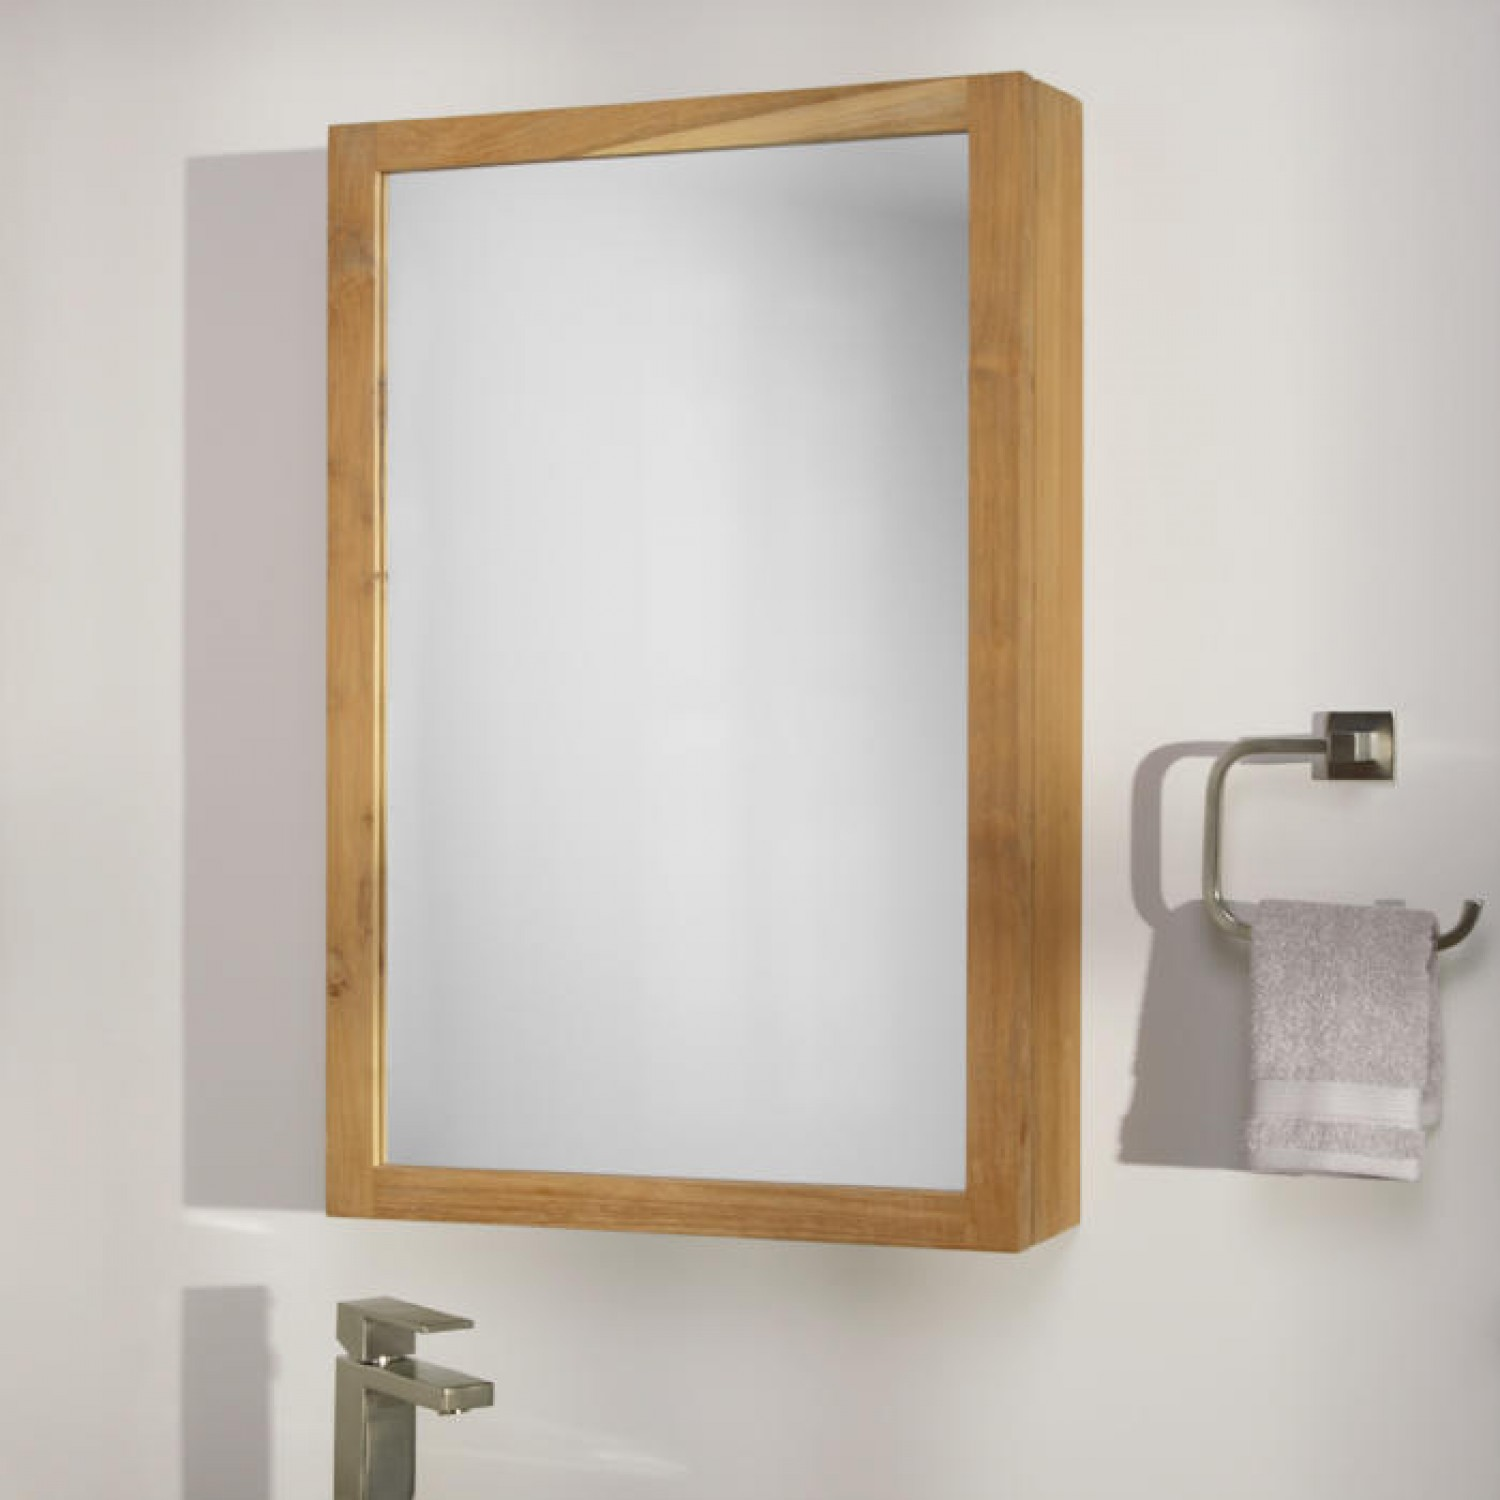 Custom wood lowes Medicine Cabinets With Mirrors At white wall for bathroom furniture ideas